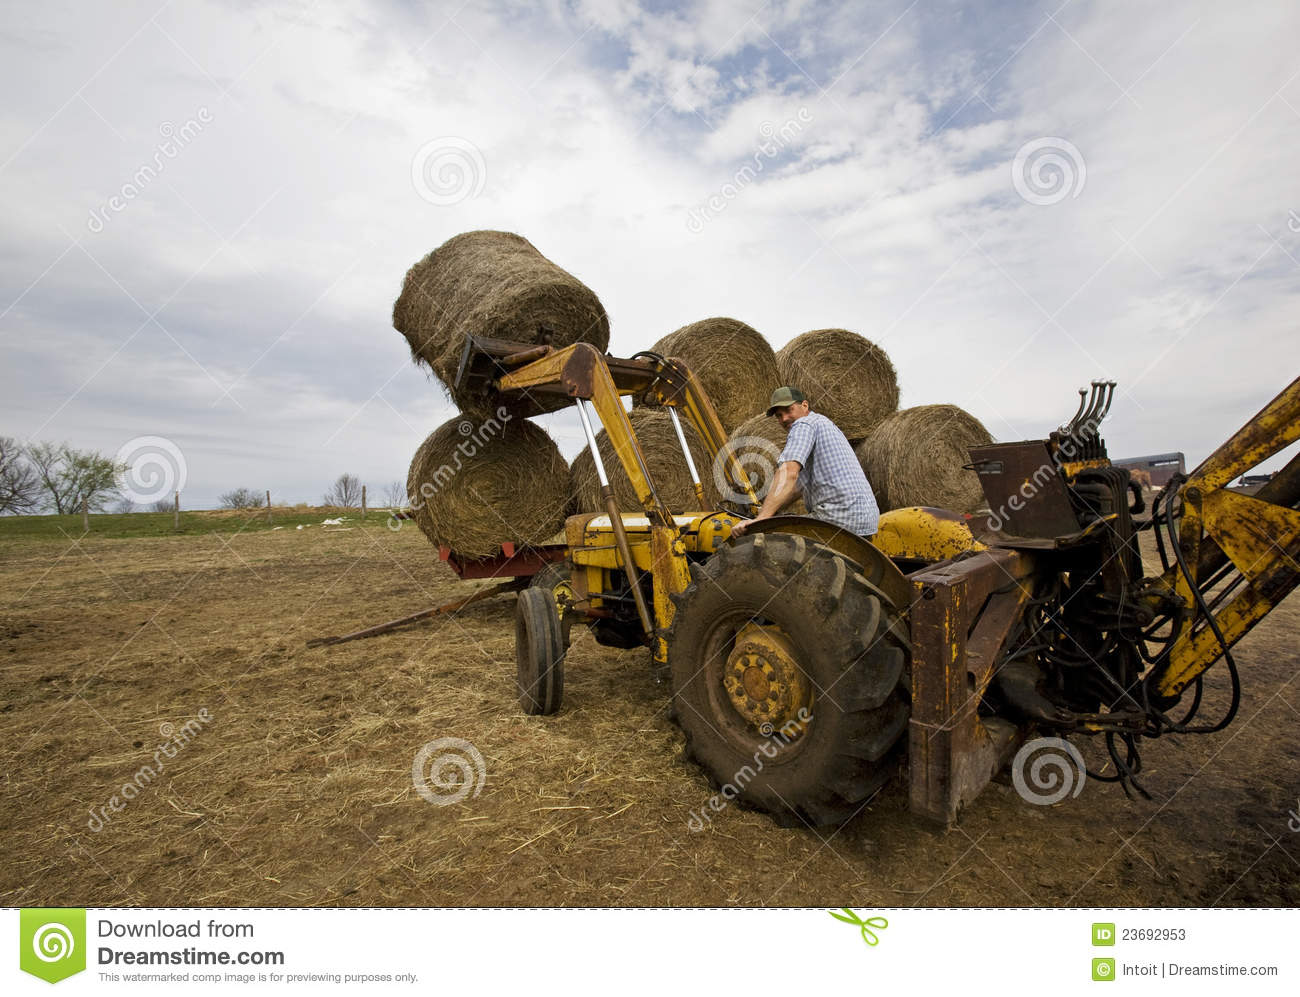 Hay Farmer Tractor Cartoon : Happy farmer on tractor with round hay bales stock photos